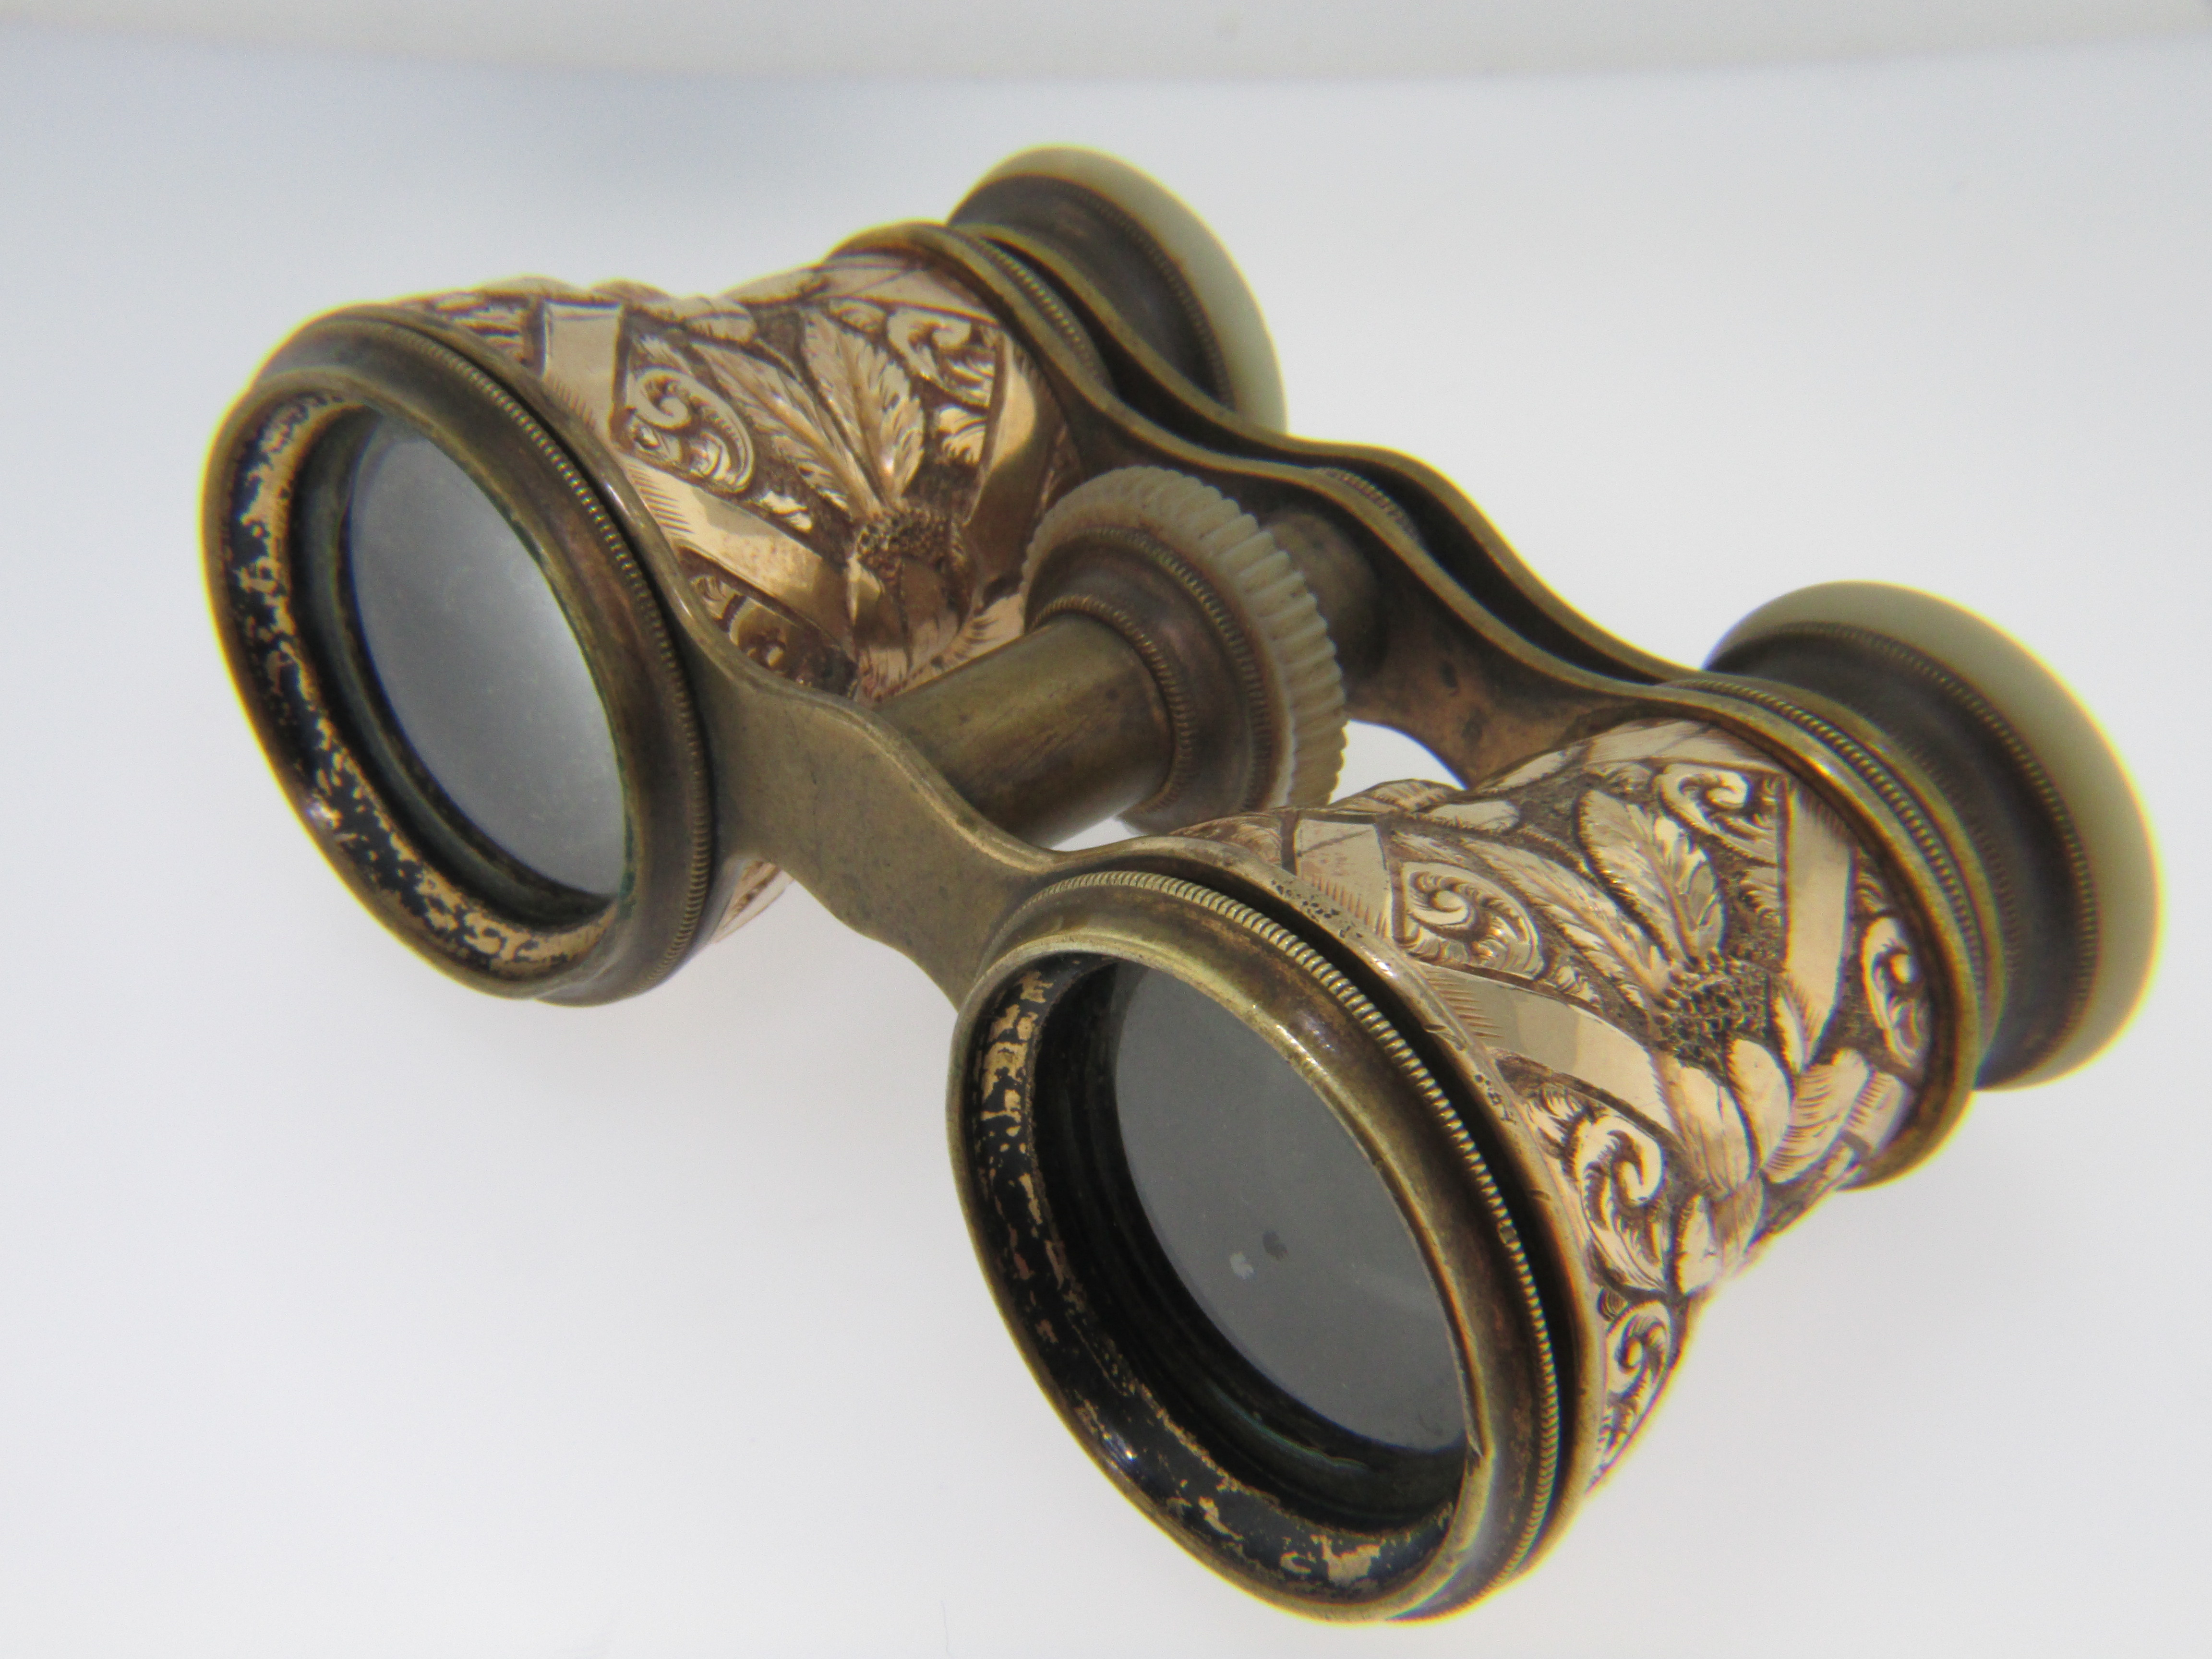 antique �the elite paris� gold filled opera glasses with a